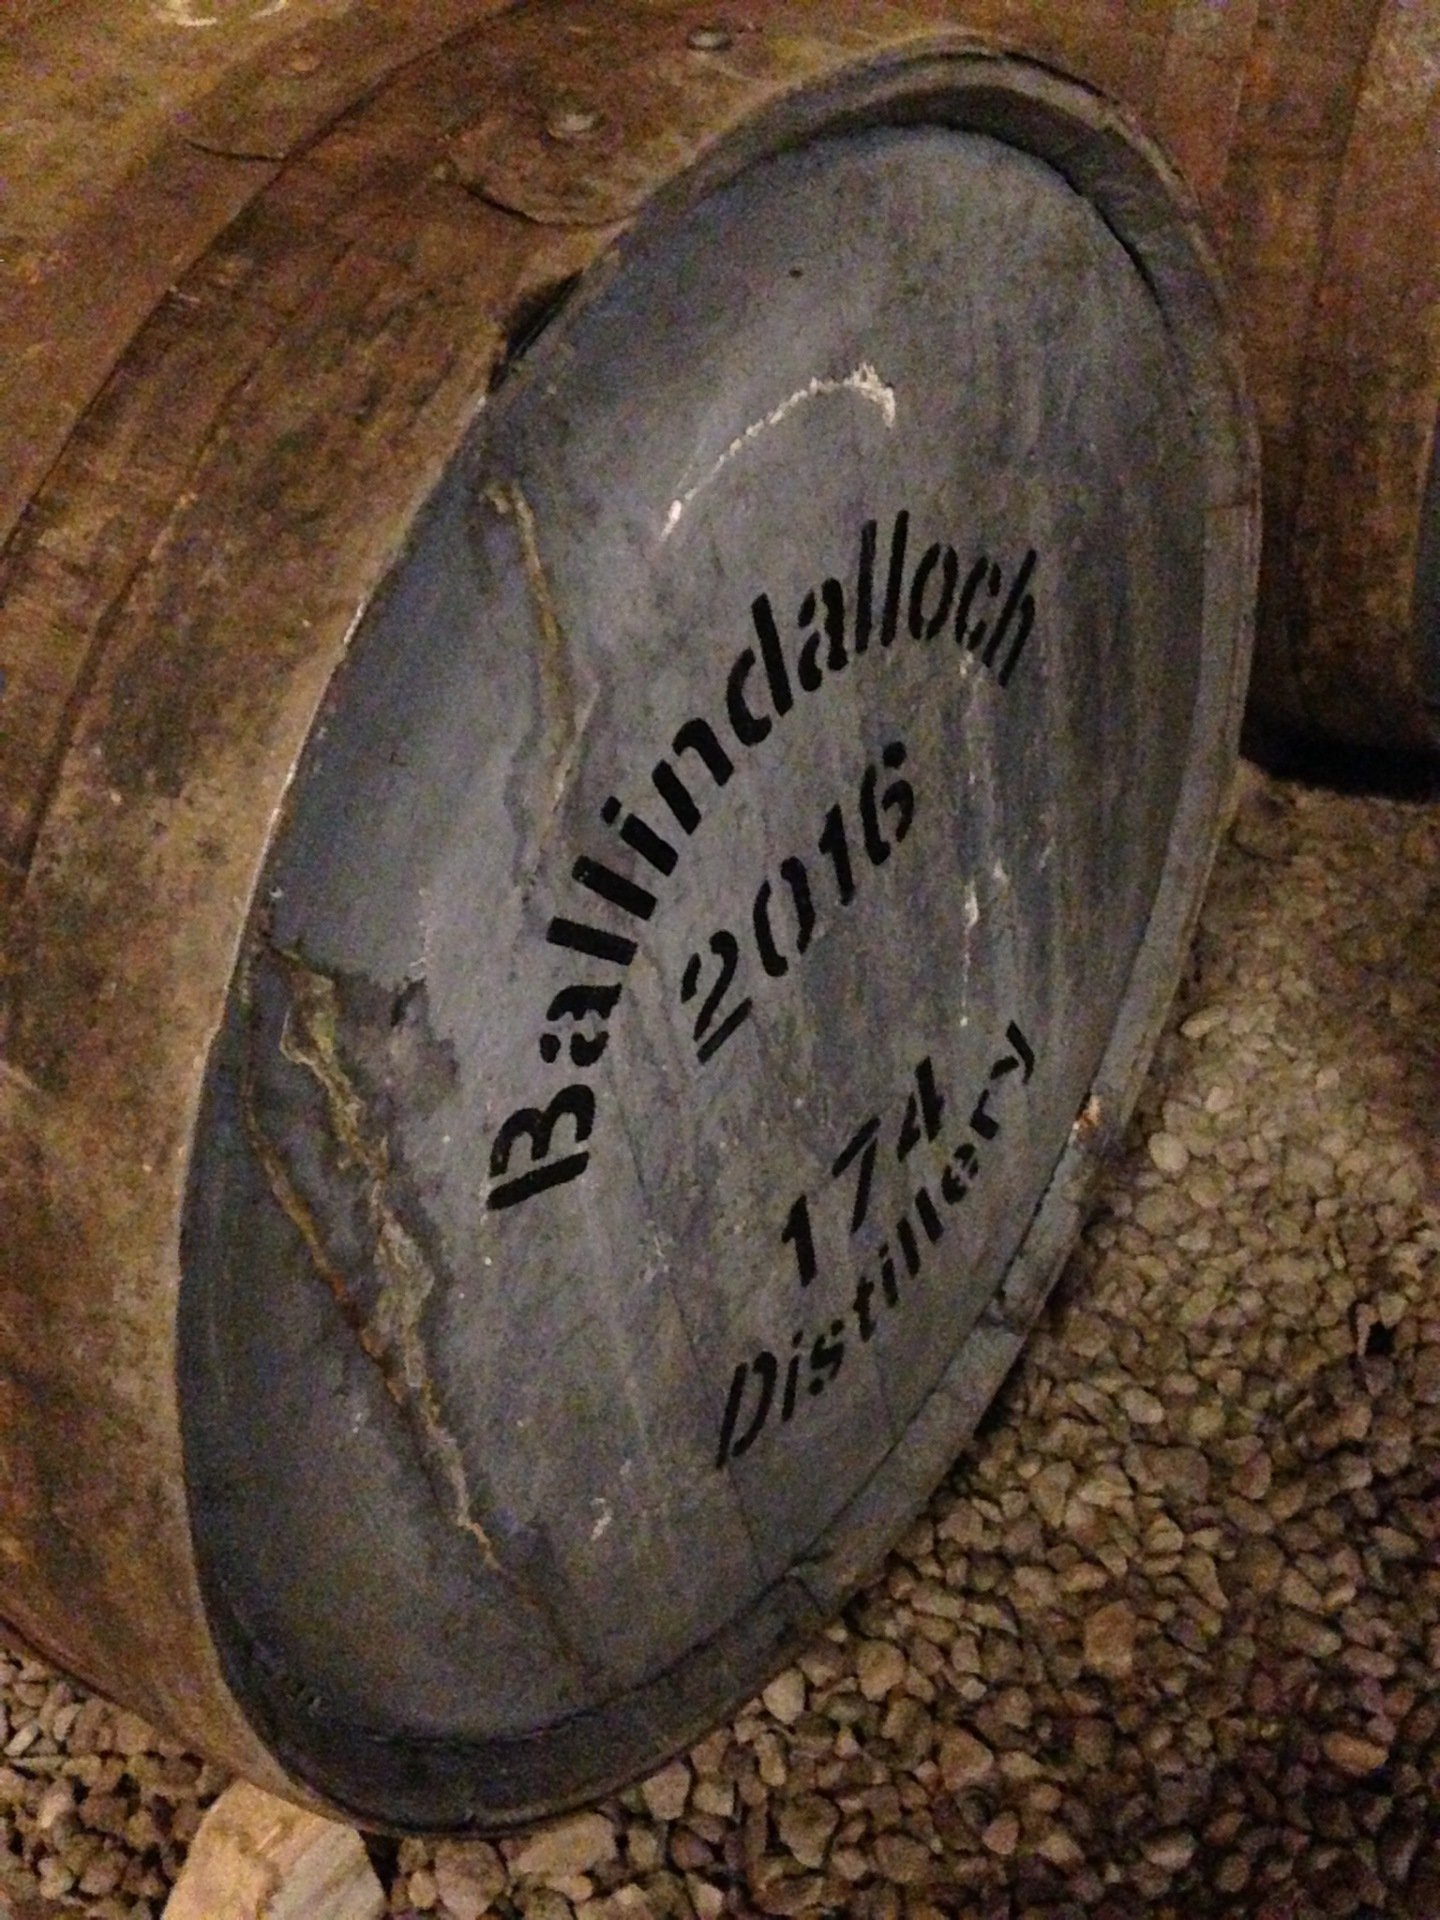 Ballindalloch Distillery Tour 29th April 2016